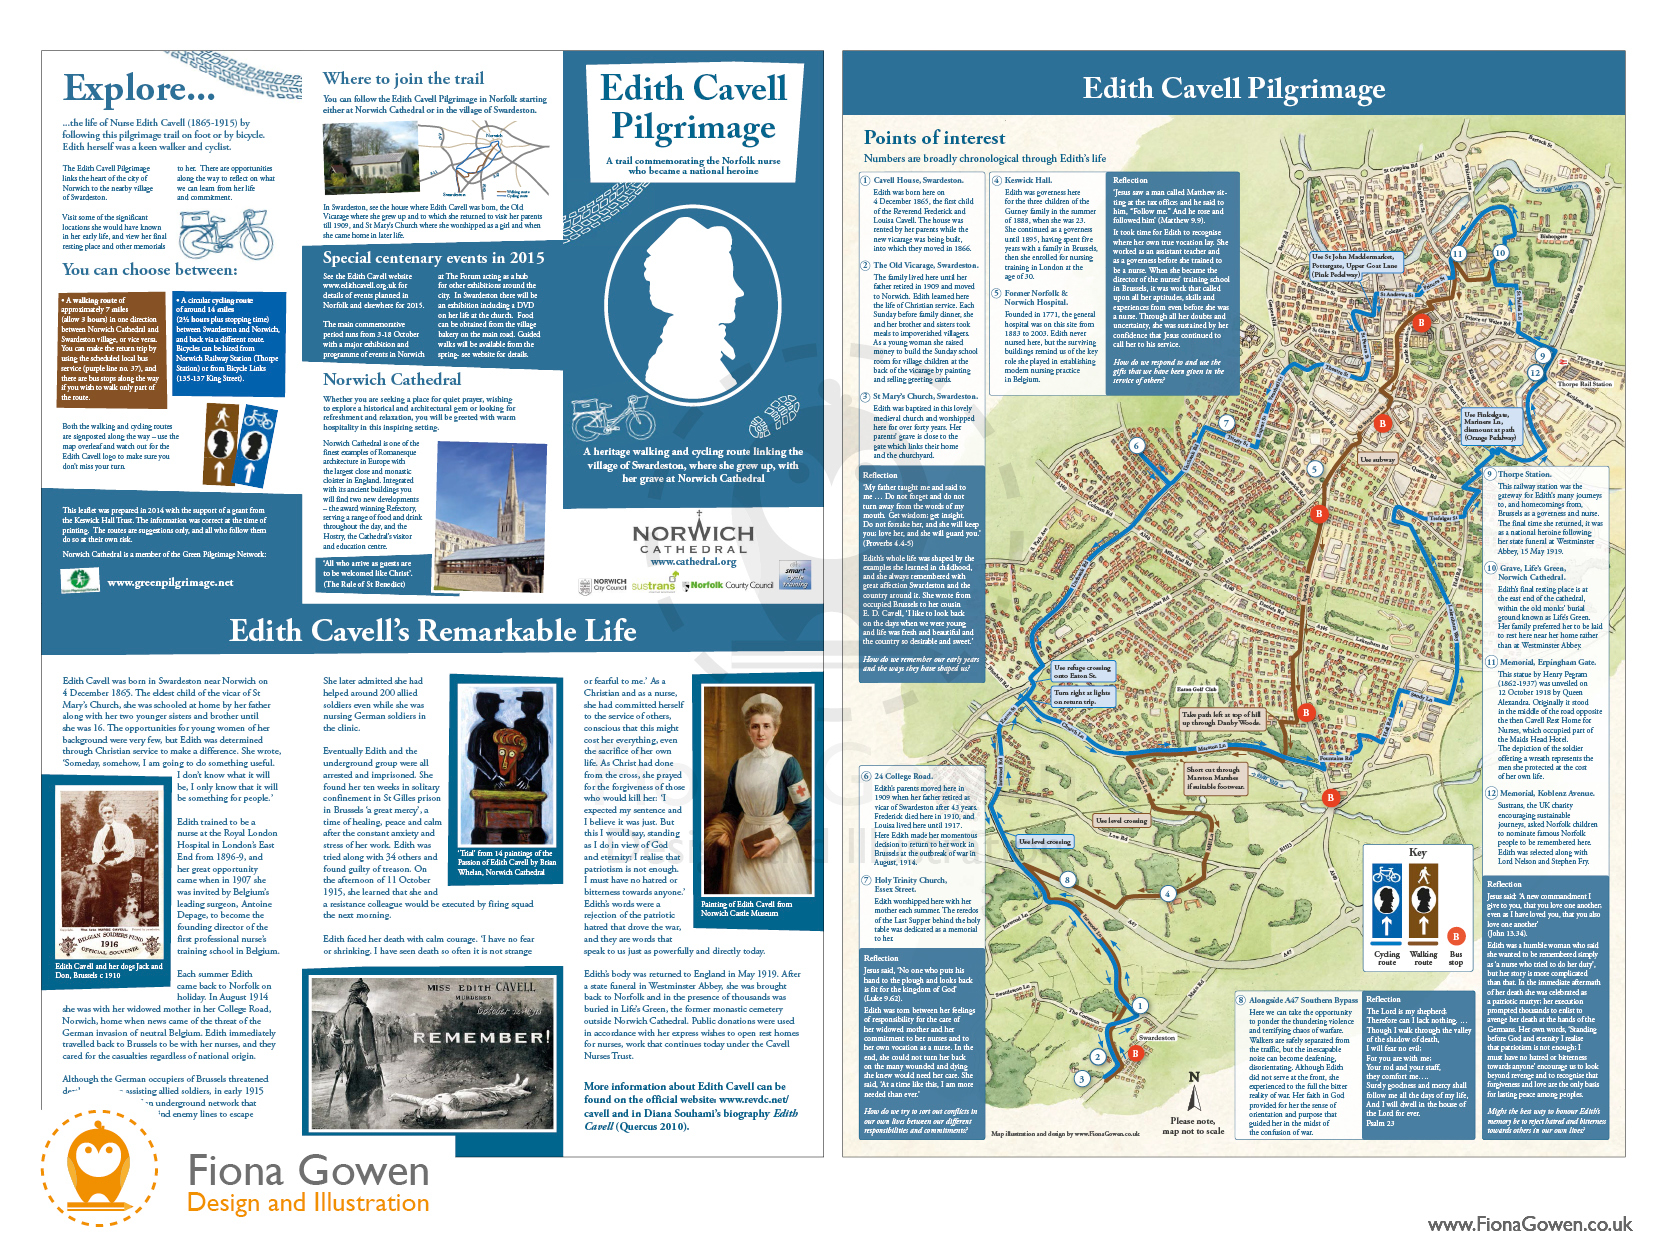 Norwich Edith Cavell cycle trail map illustration and leaflet design by Fiona Gowen.